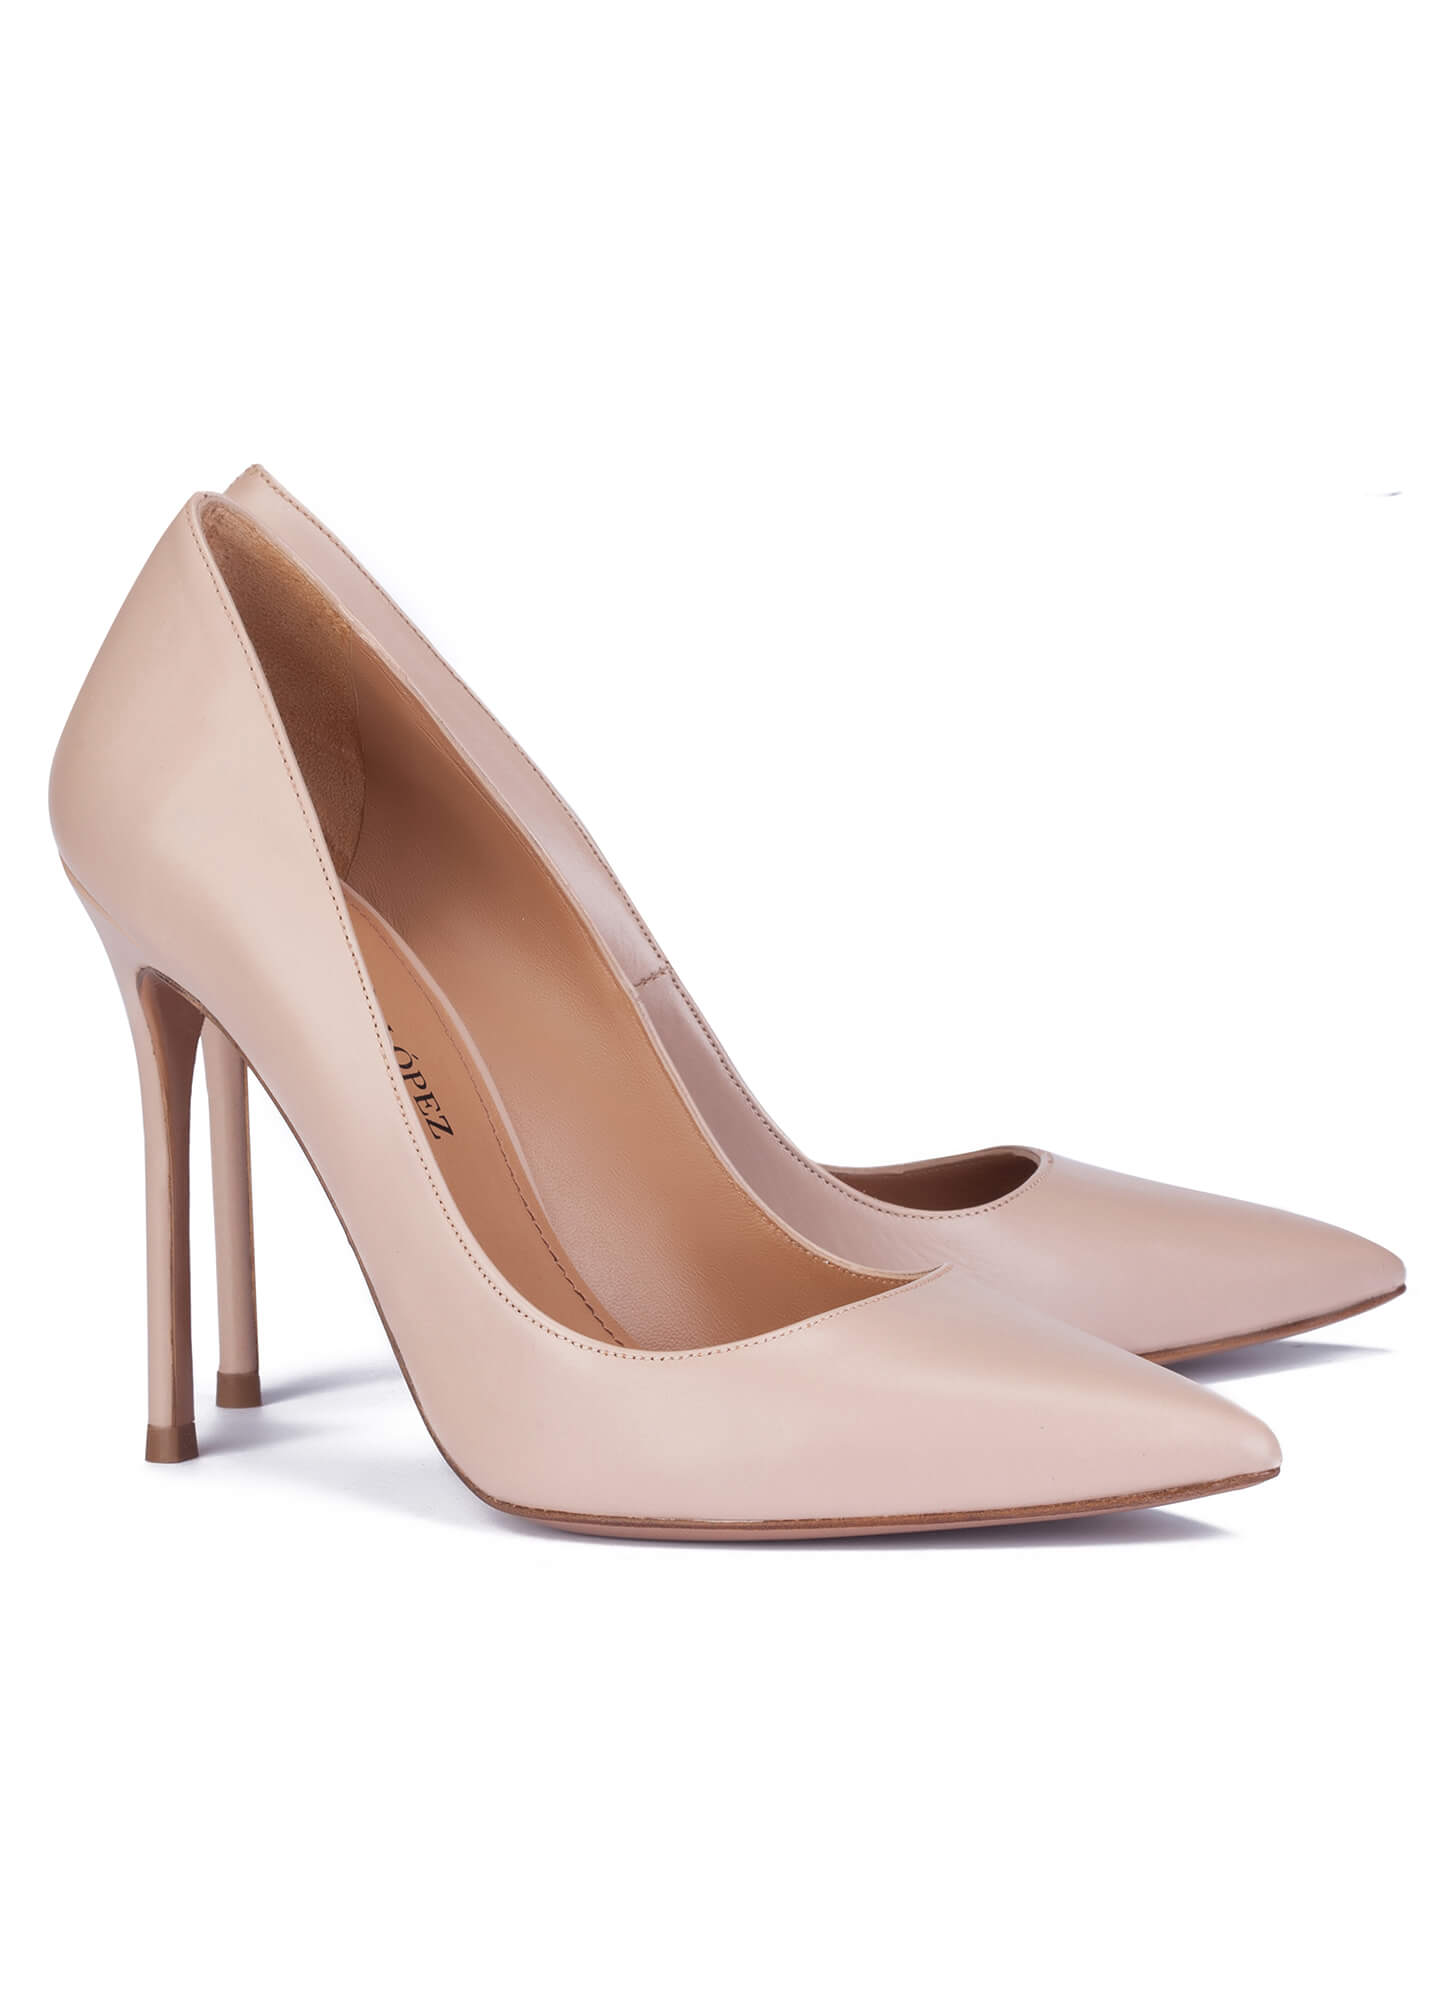 db5dbdd1026c Heeled pumps in nude leather - online shoe store Pura Lopez . PURA LOPEZ